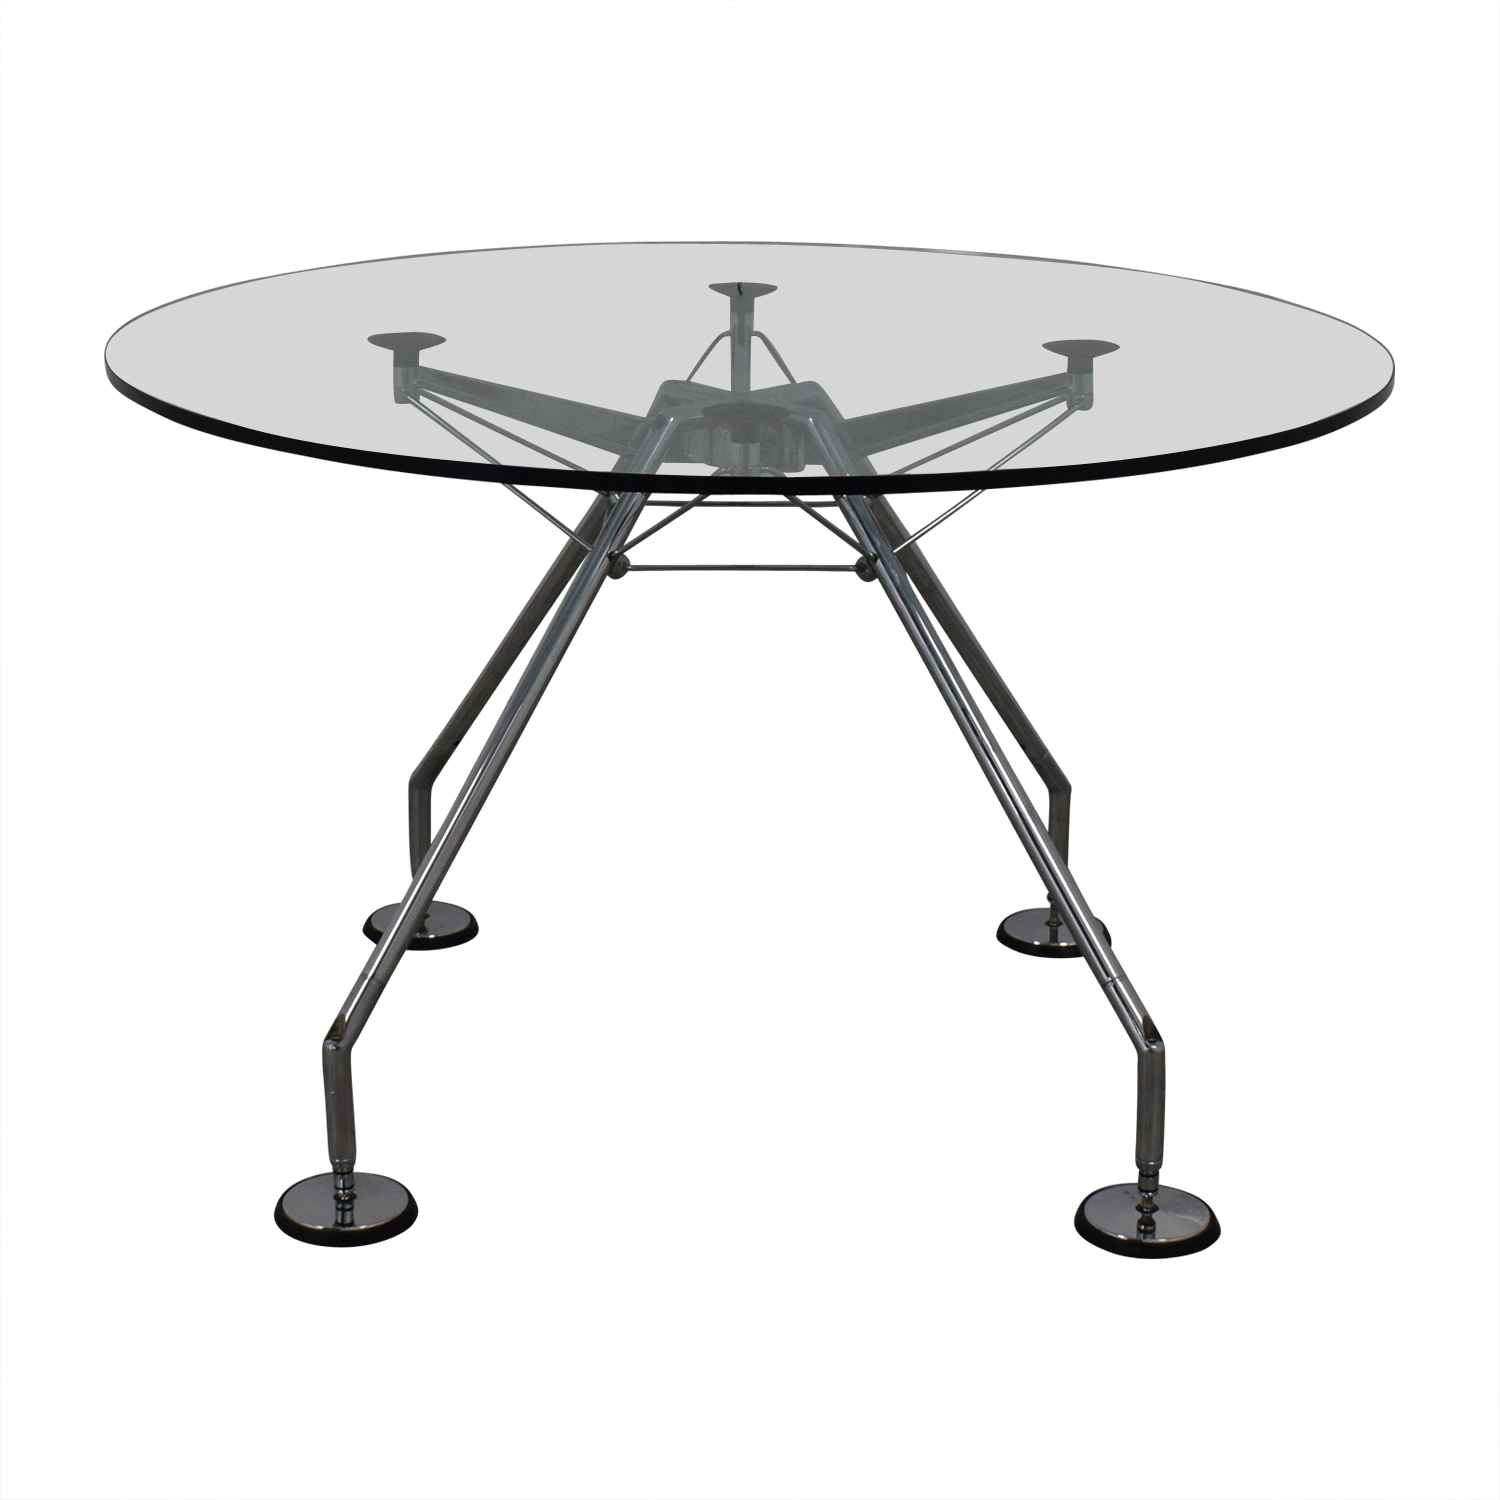 Tecno Tecno Nomos Circular Table coupon